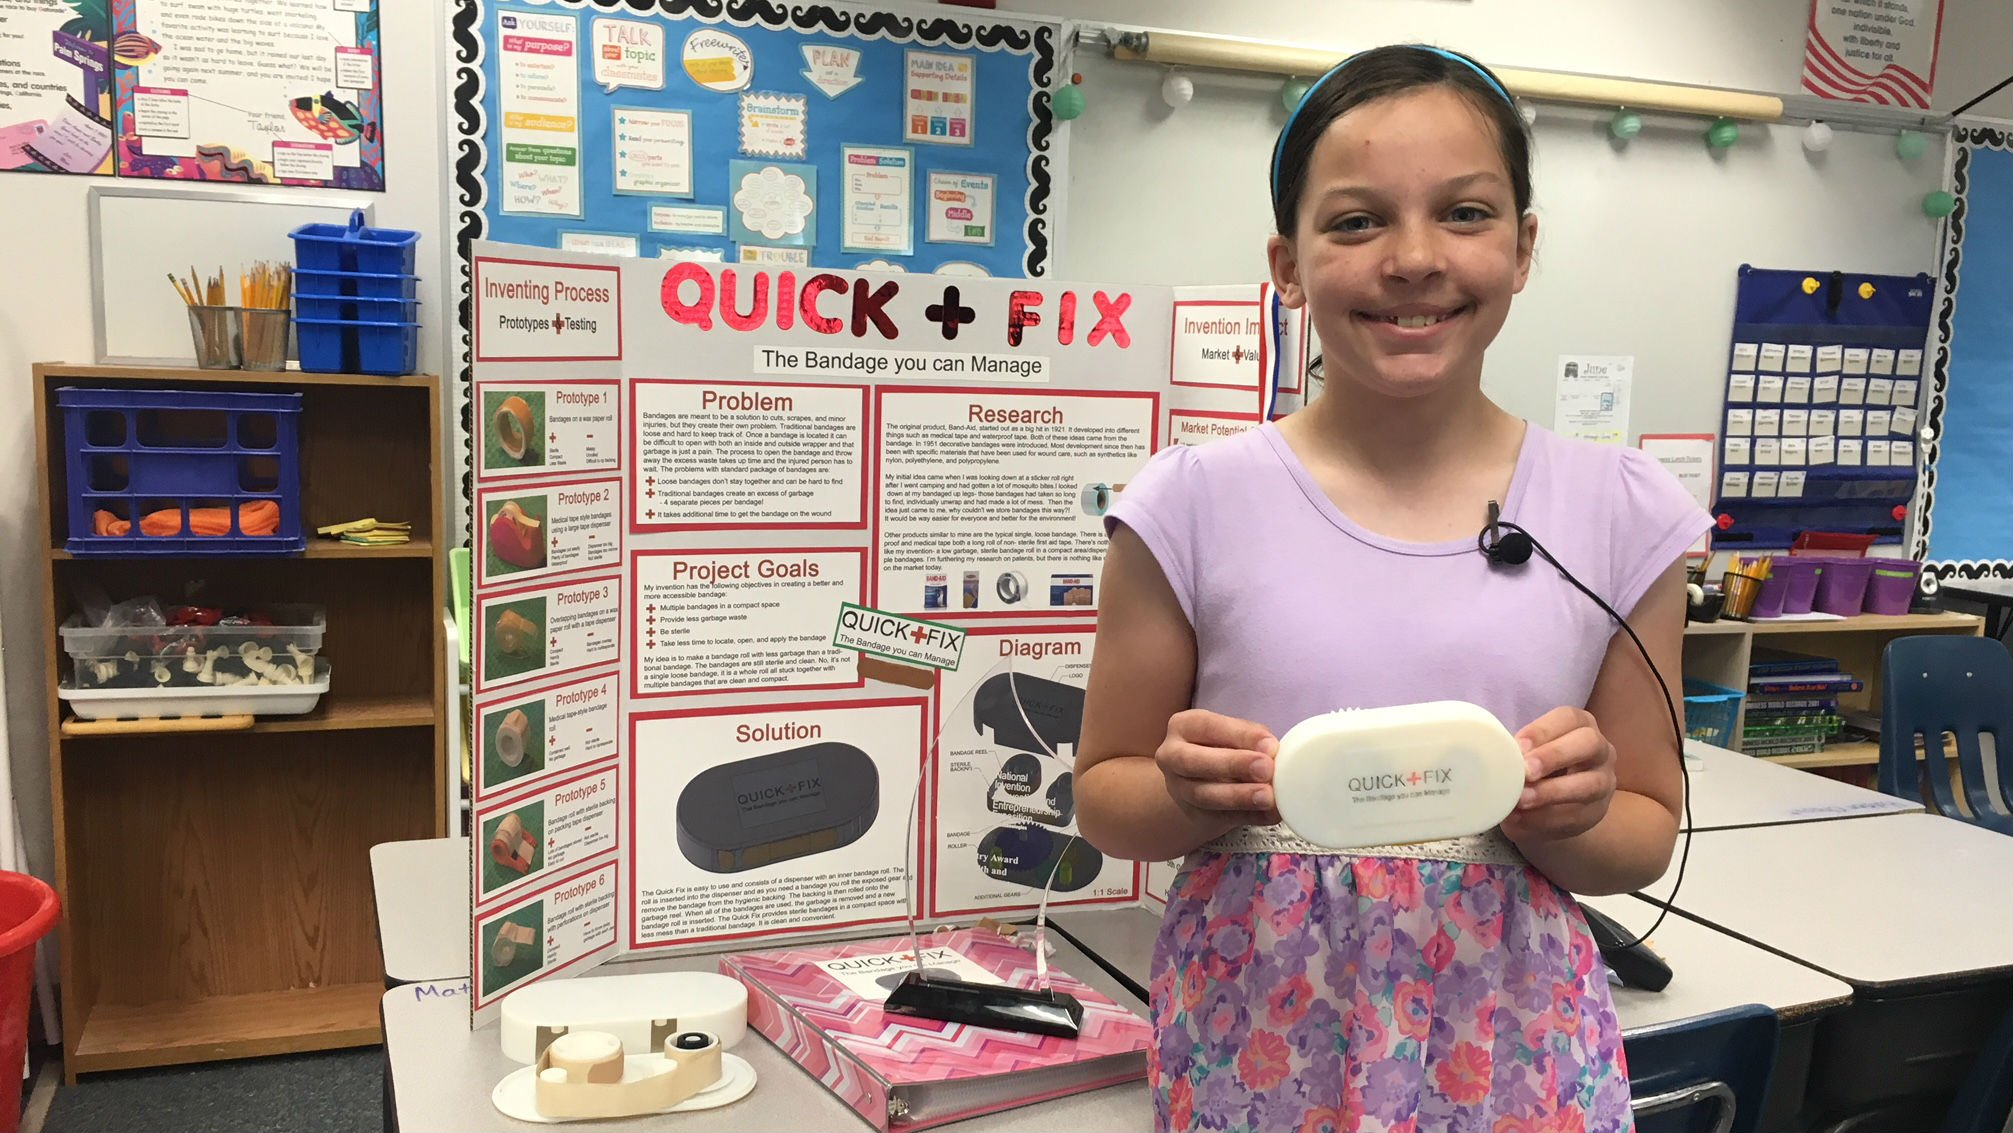 Lauren Stephens took home the top prize with her Quick Fix Bandage invention